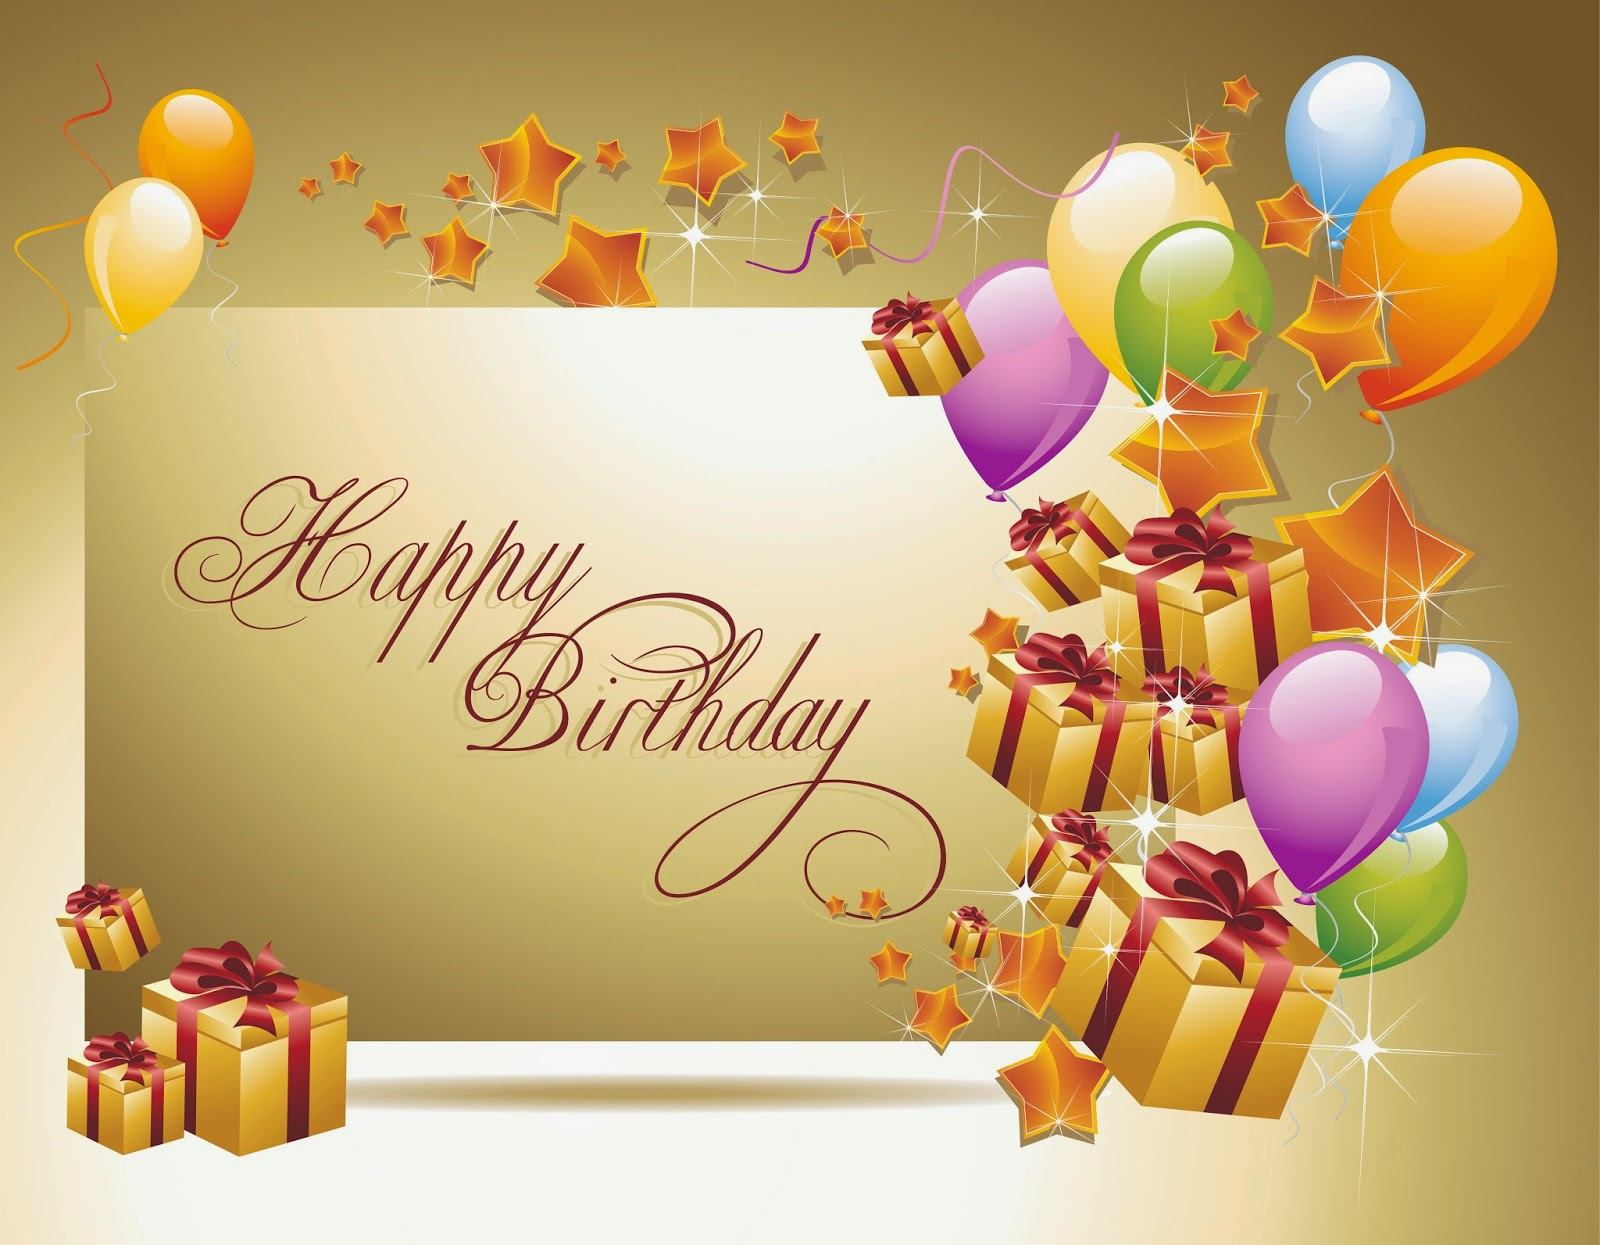 Birthday Wishes For Relatives - Birthday Cards, Greetings, Wishes And Images